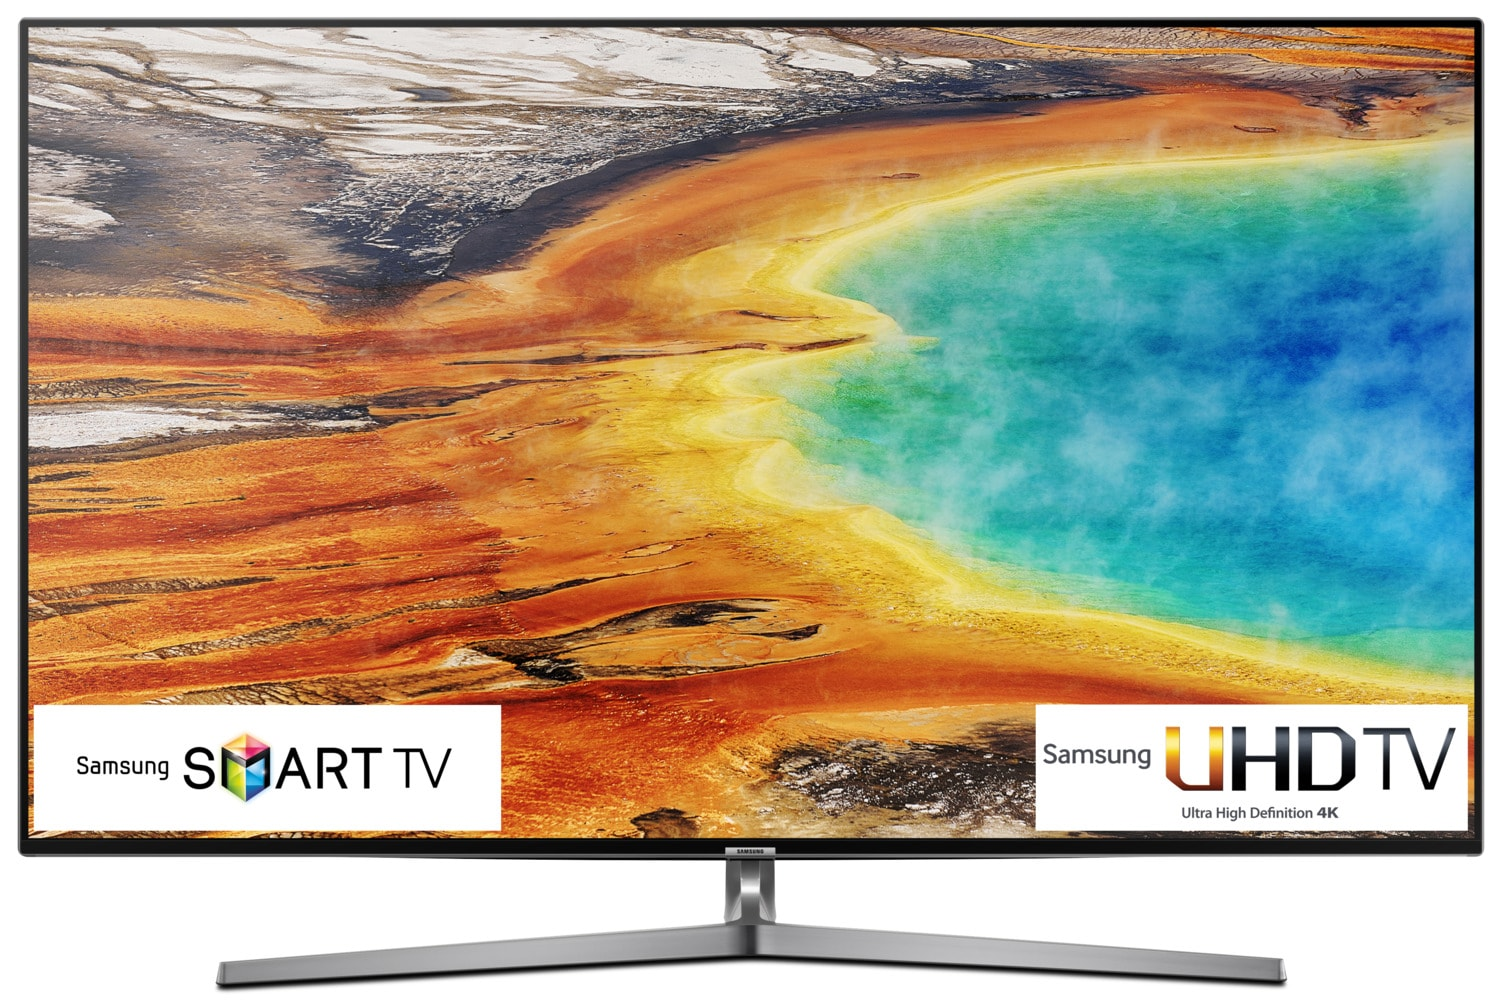 "Samsung 75"" 4K UHD Smart LED TV - UN75MU9000FXZC"